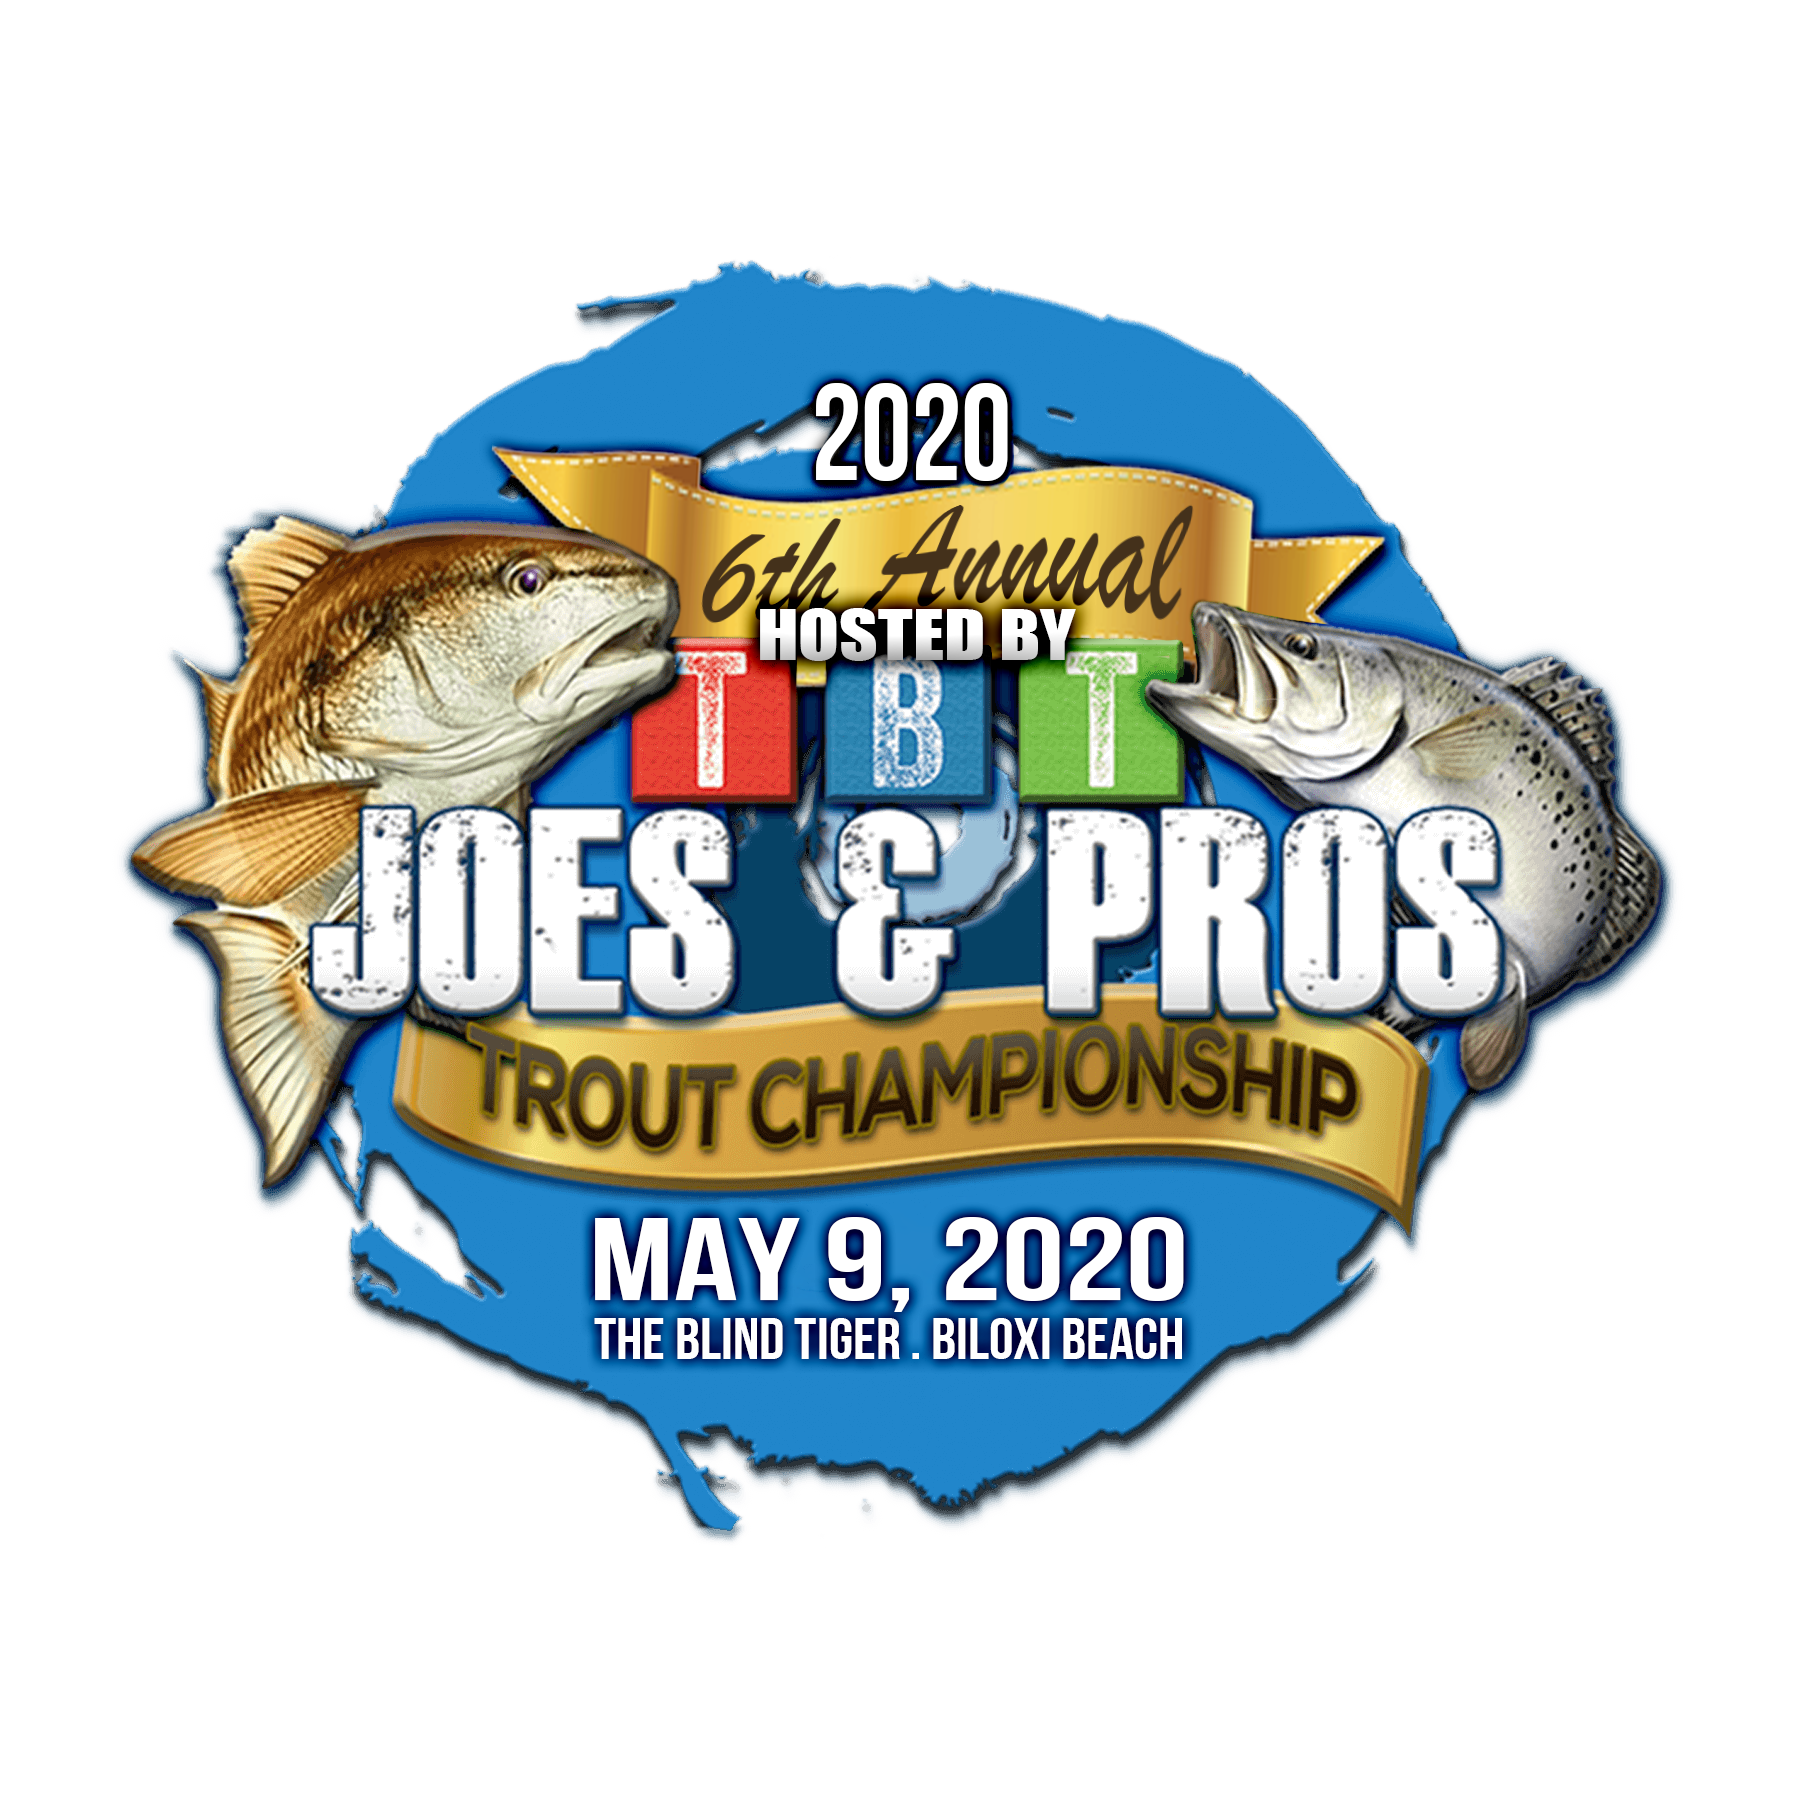 Joes & Pros Fishing Tournament